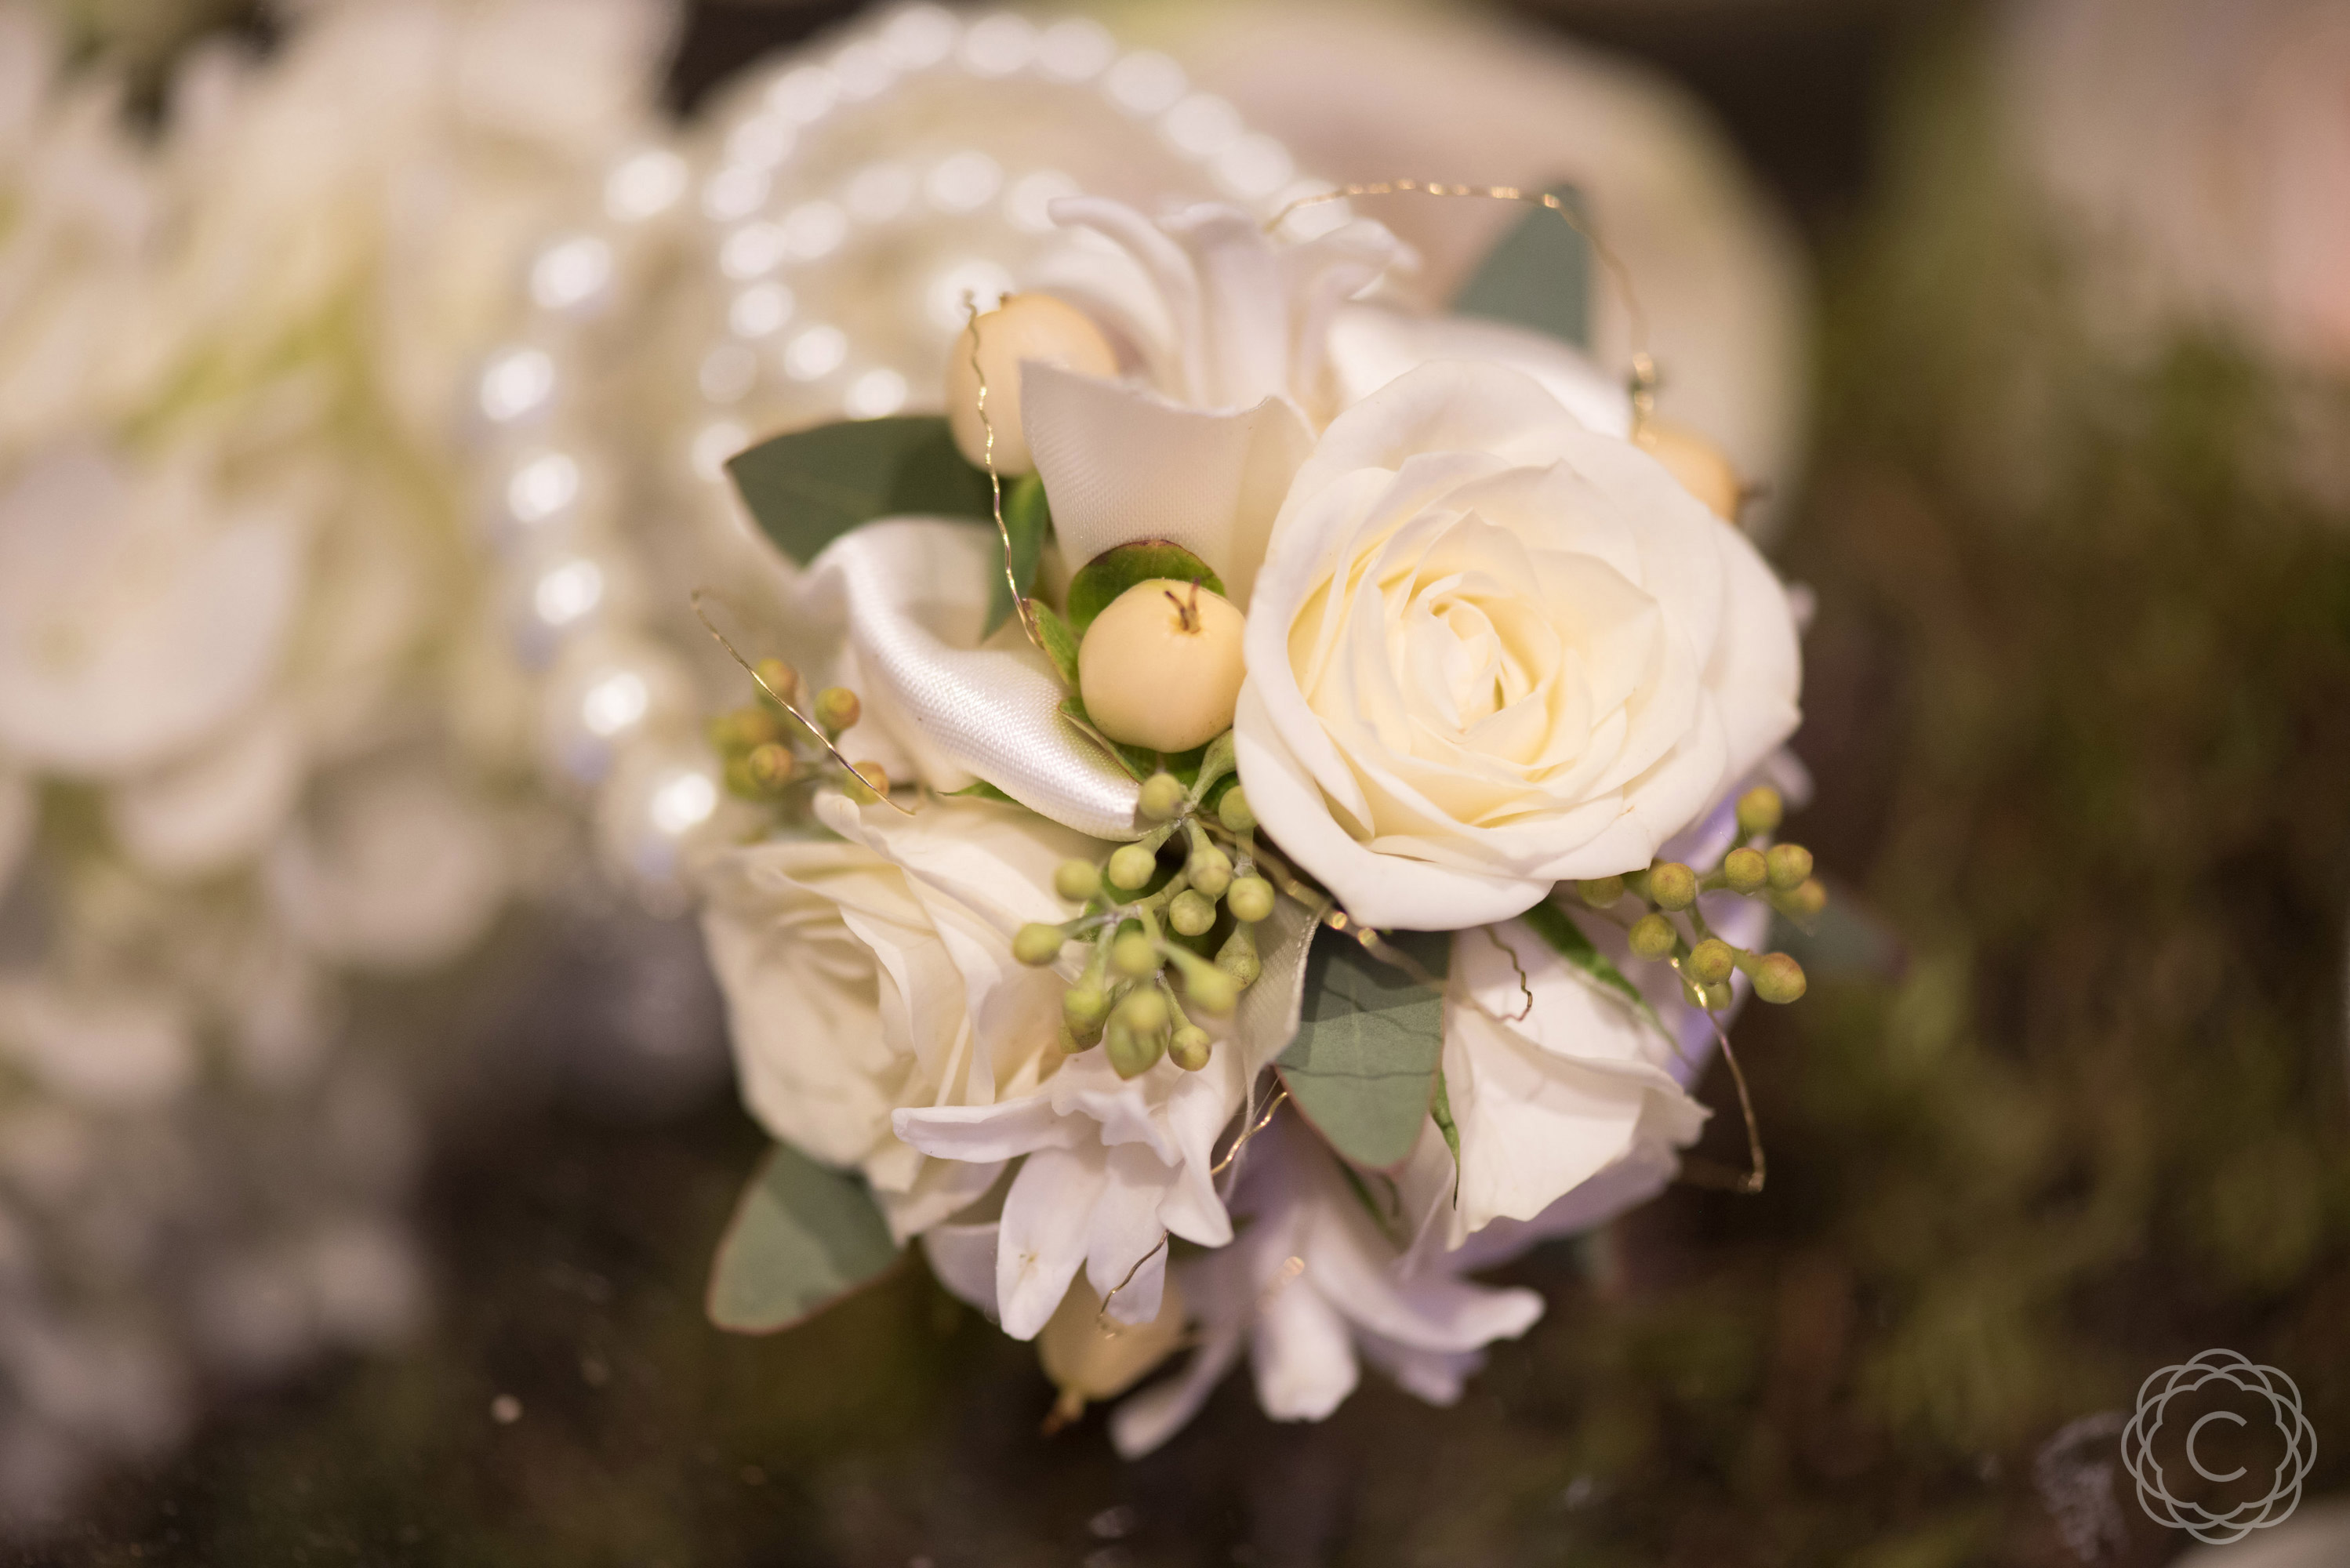 White Spray Rose Wrist Corsage On Pearl Bracelet With Gold Accent